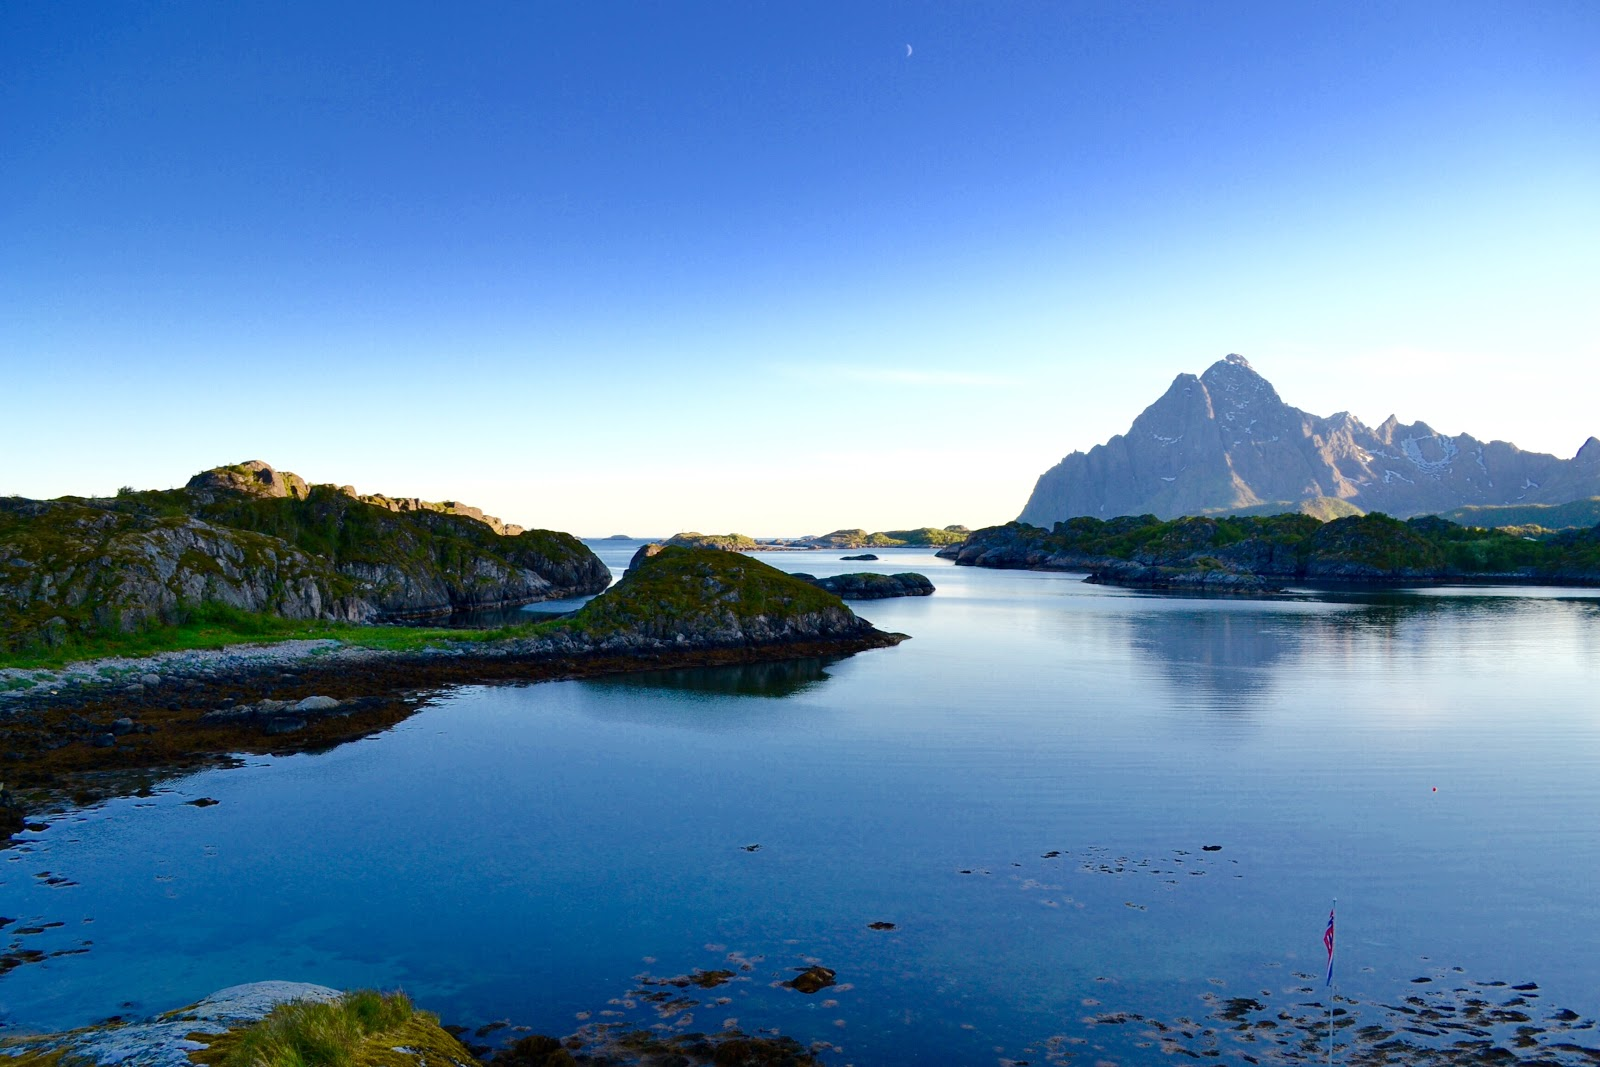 The indescribable tranquil settings and natural splendor of the Lofoten Islands in northern Norway will surely captivate all who visit. This photo taken at 11:00 p.m. from a lookout platform perched upon the bluff overlooking above Nyvågar Rorbuhotell.